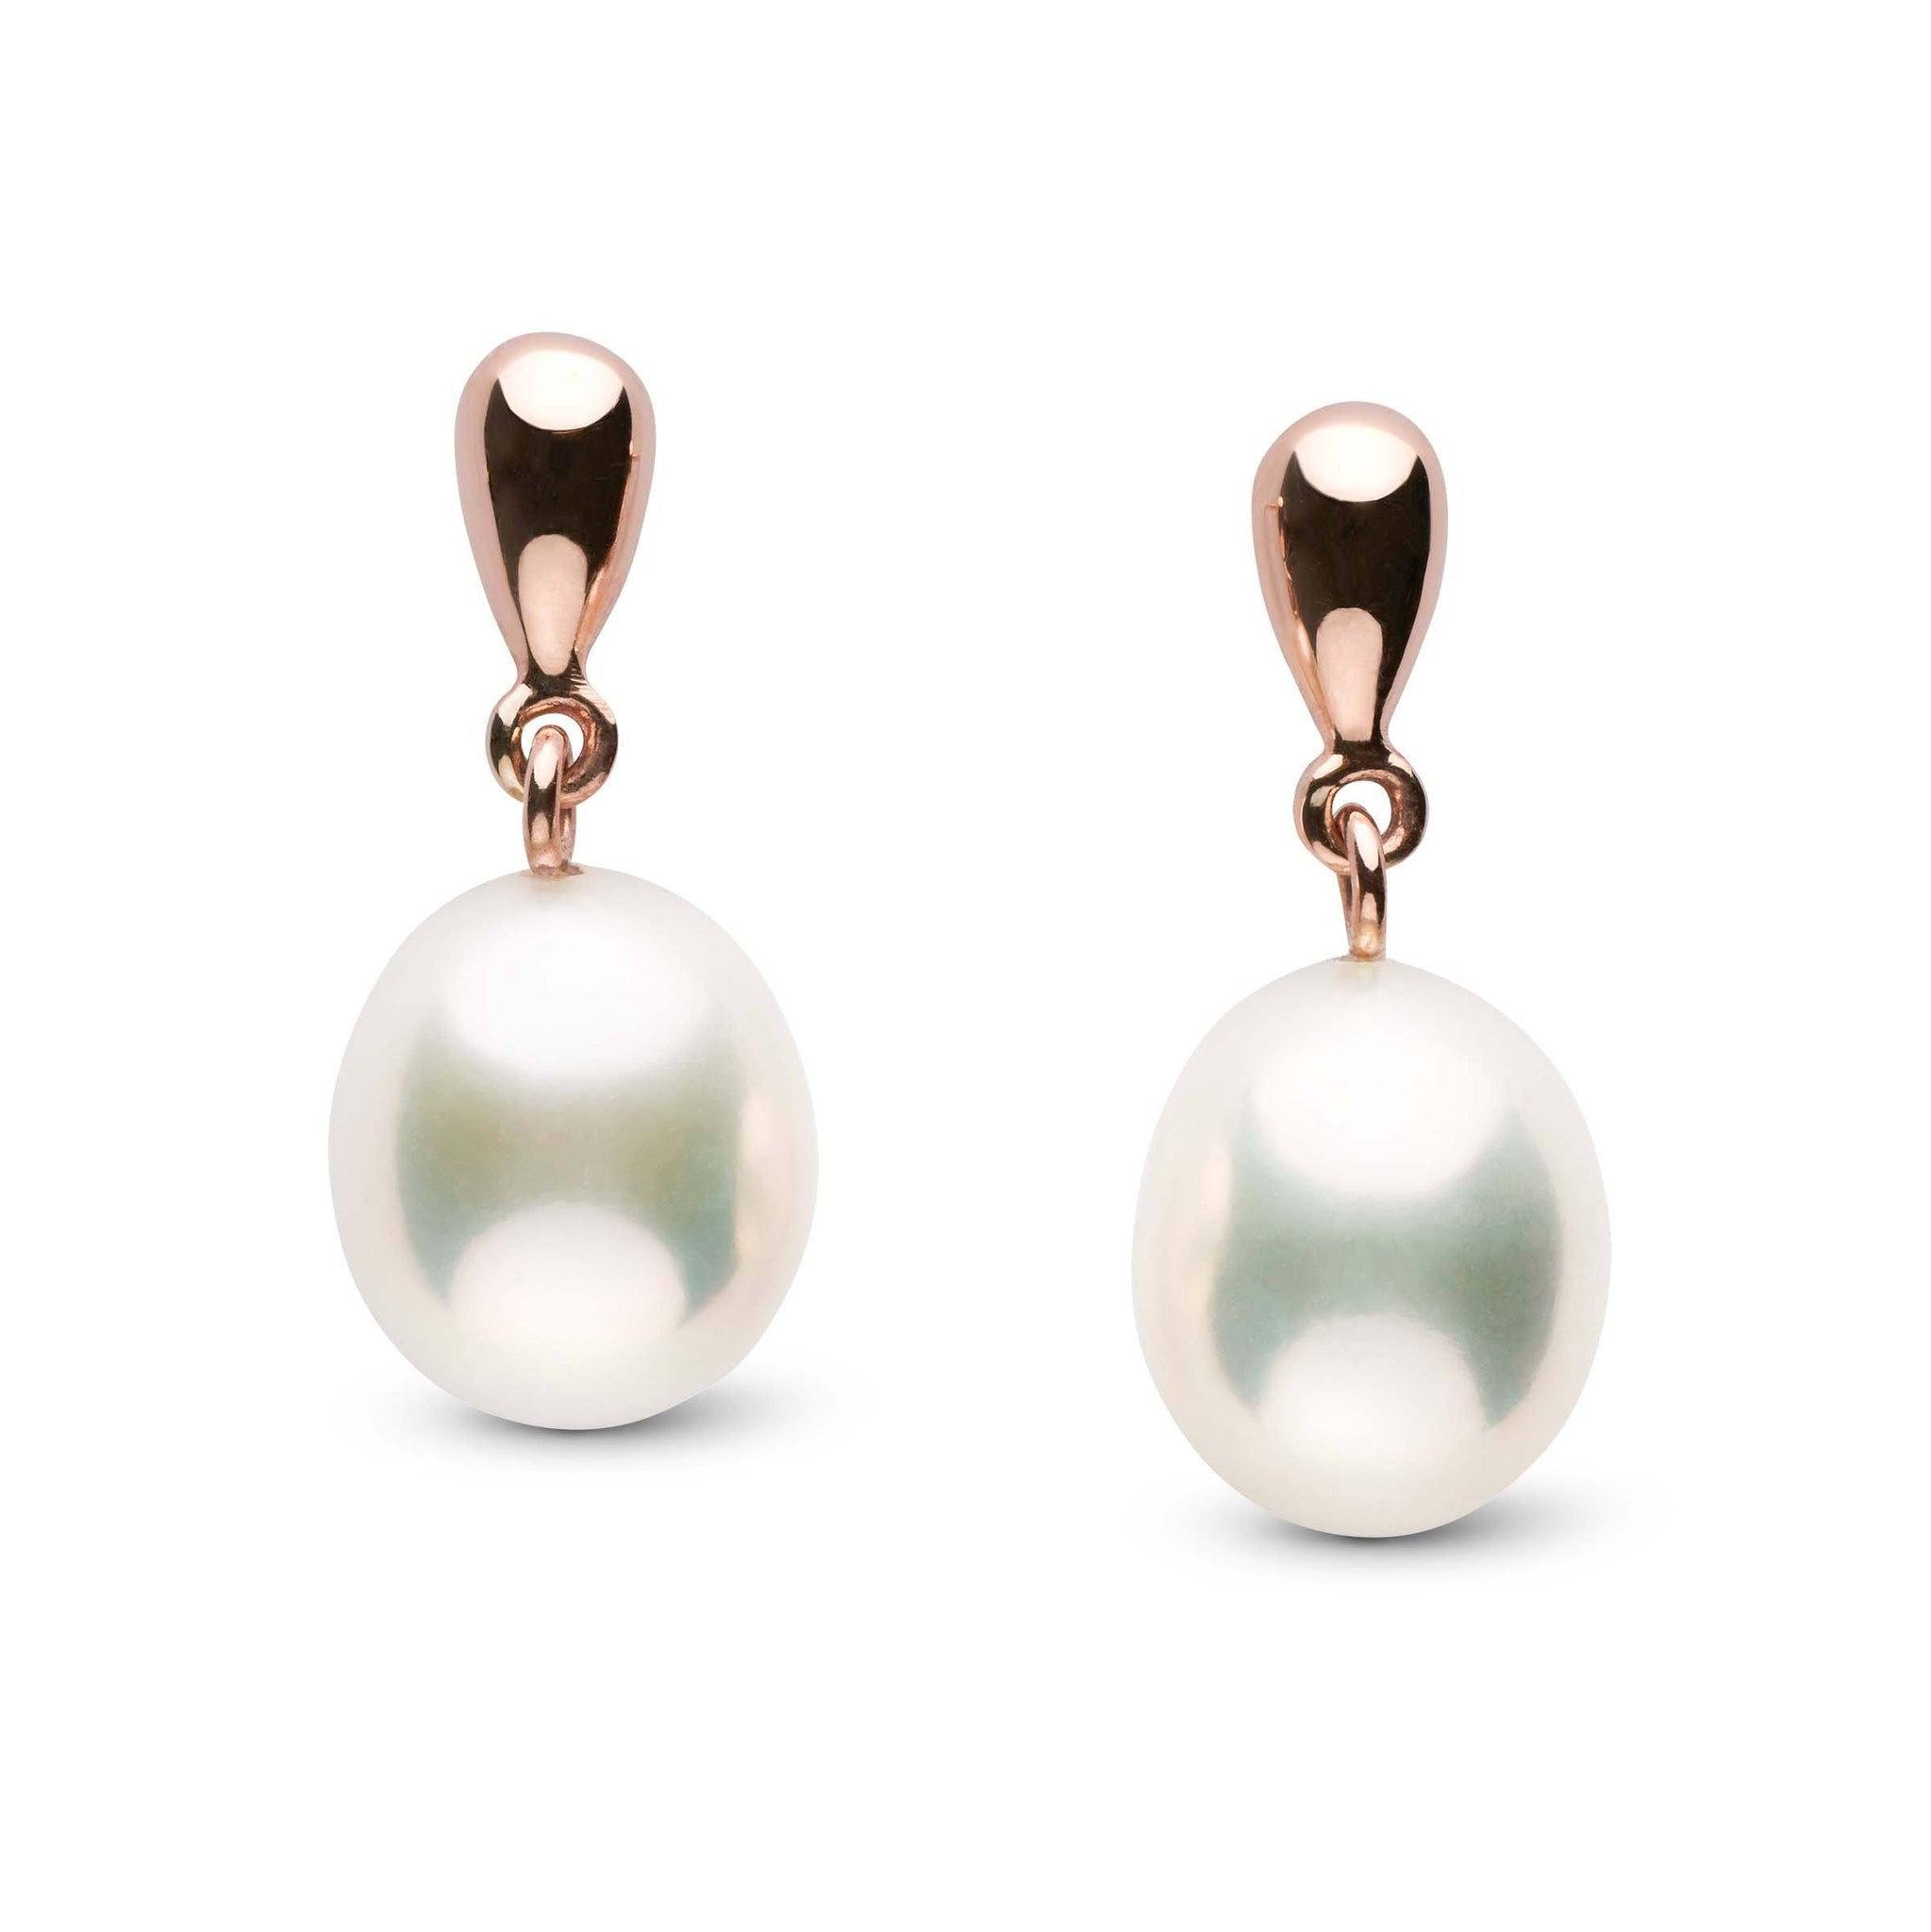 pearl lamevallar l earring giant stud chart earrings sizes plot